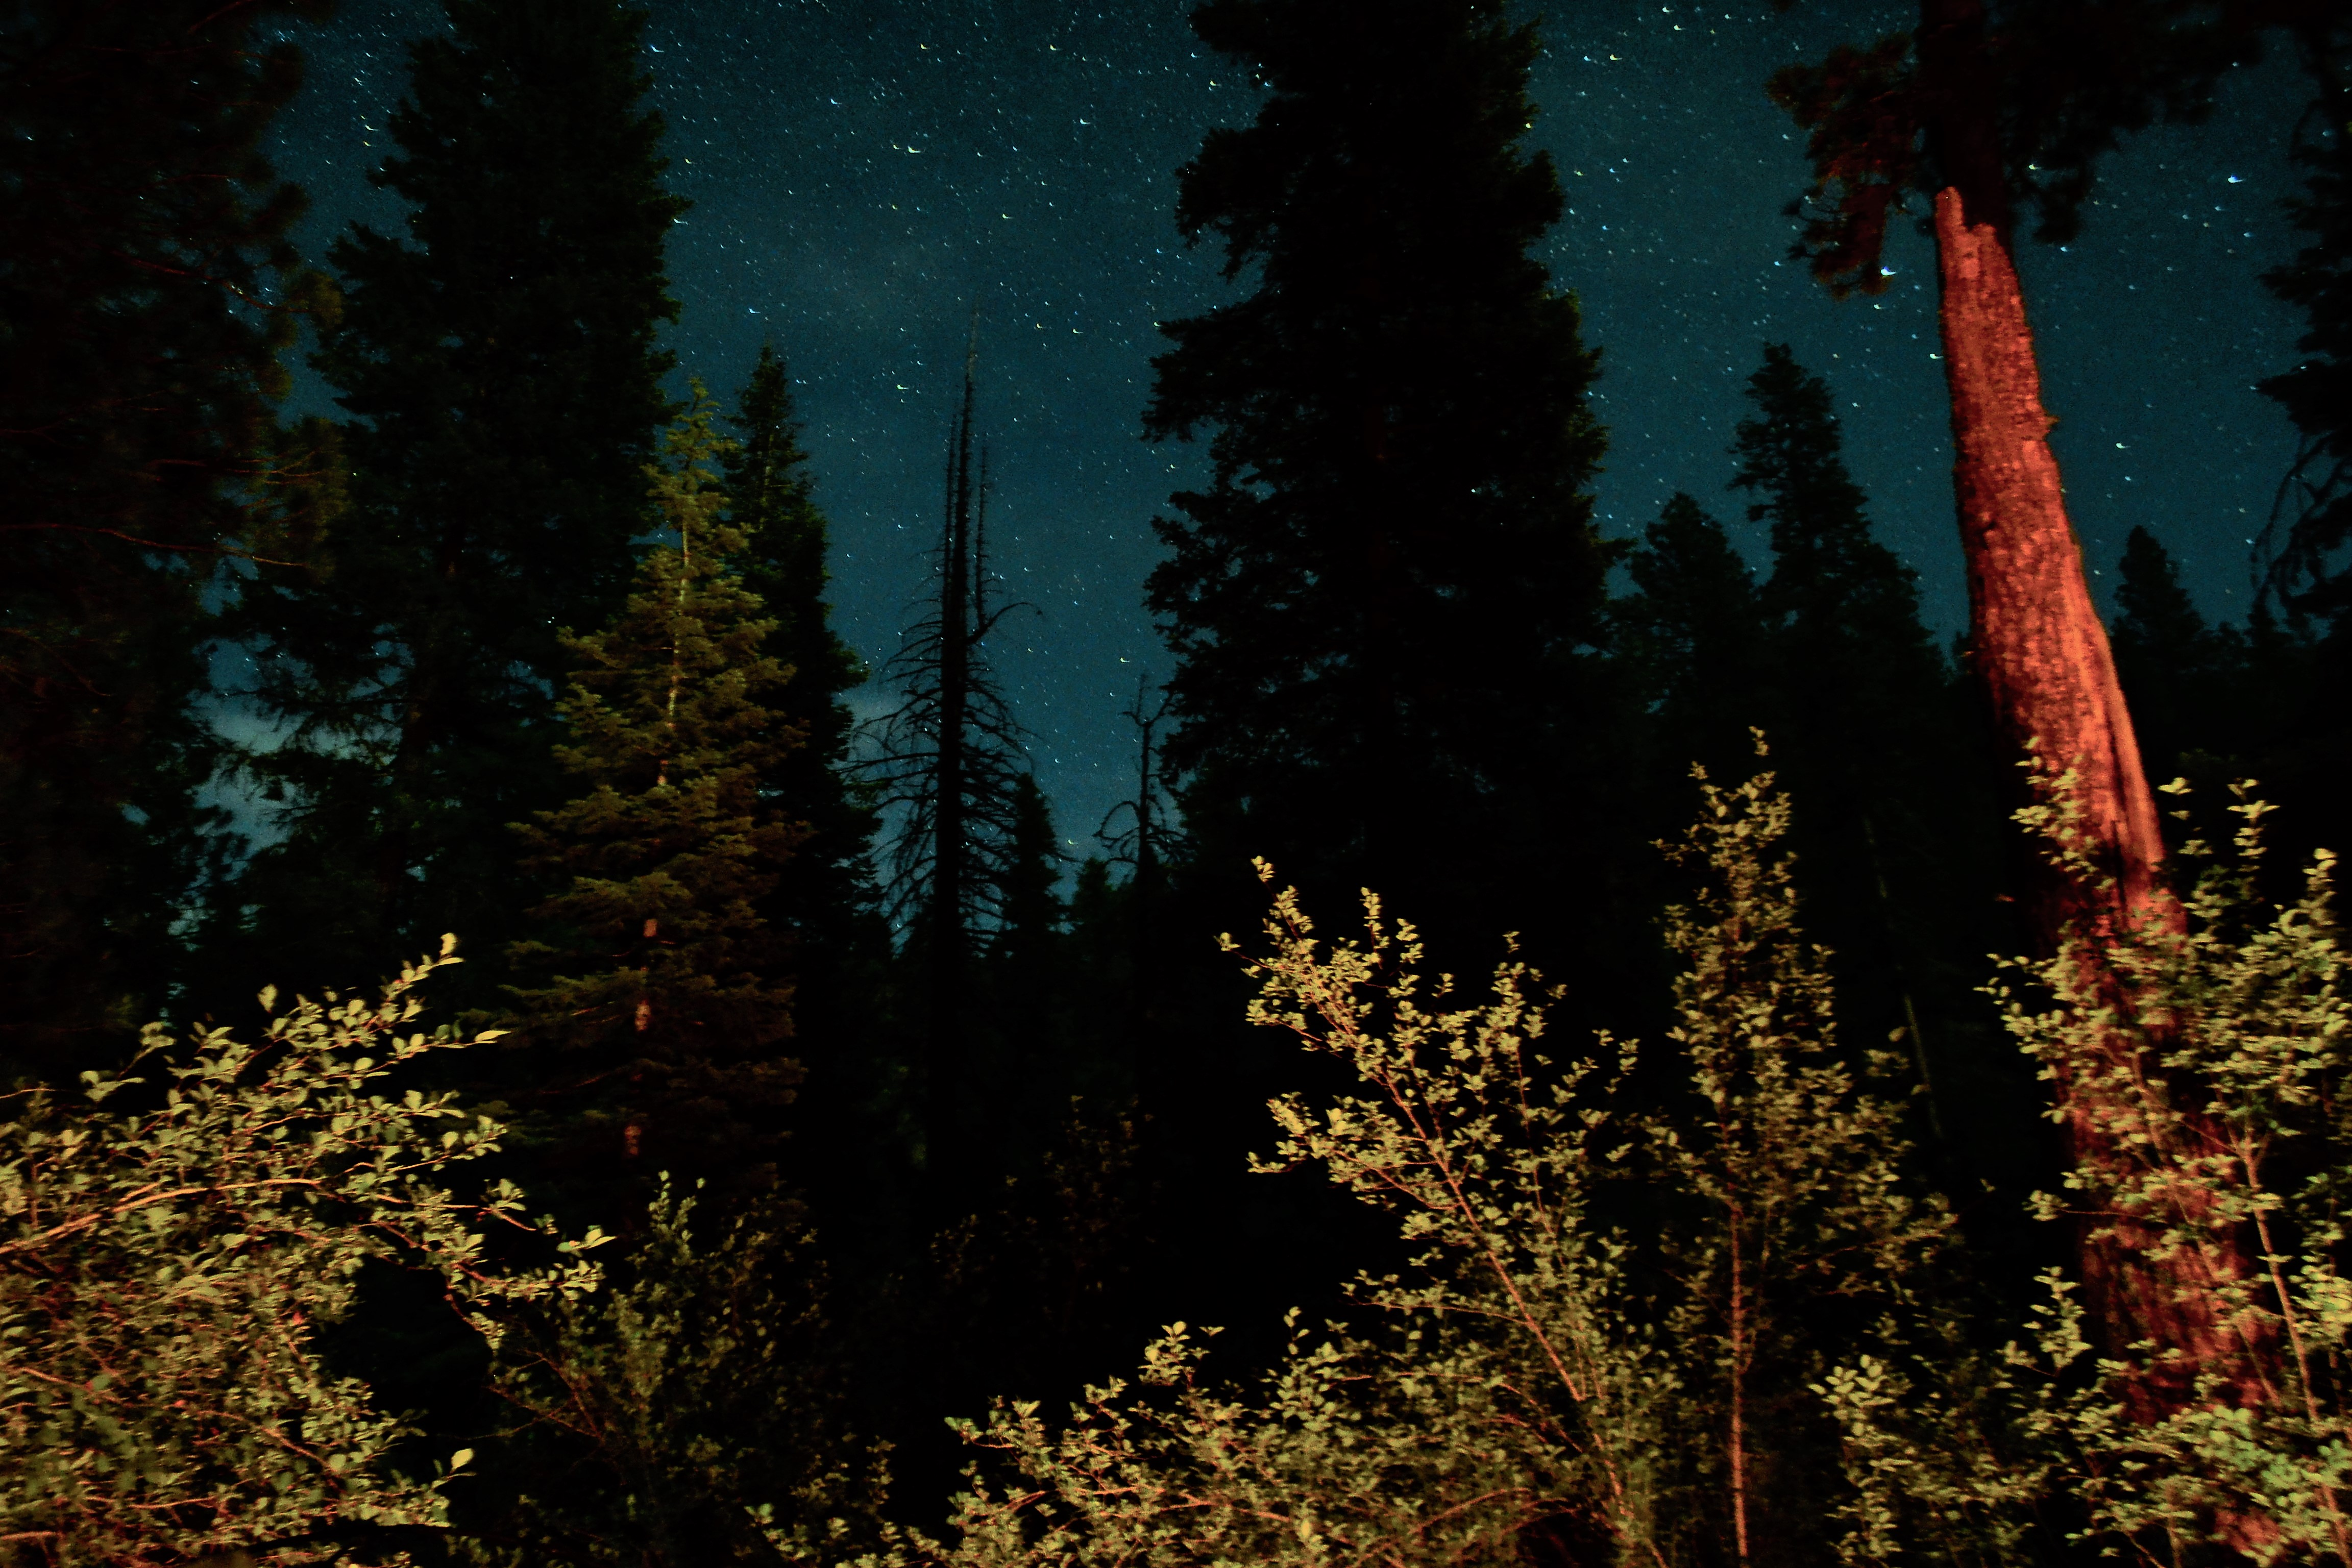 The night sky above Big Flat Campground on the Council Ranger District.